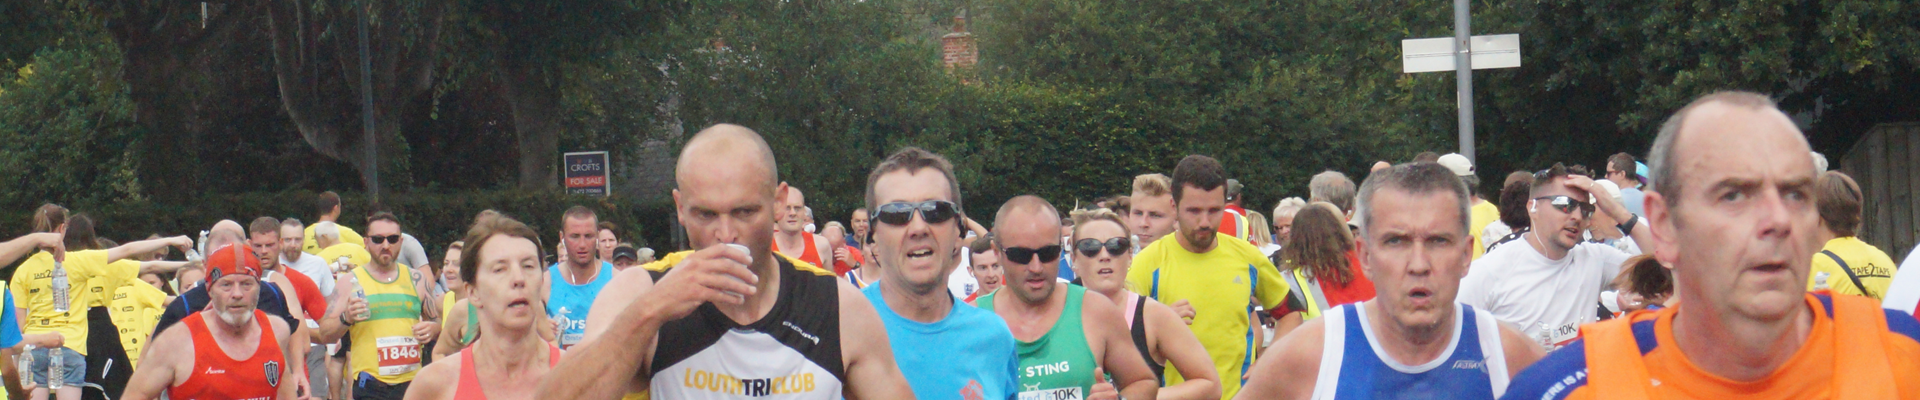 Ørsted Great Grimsby 10k 2019